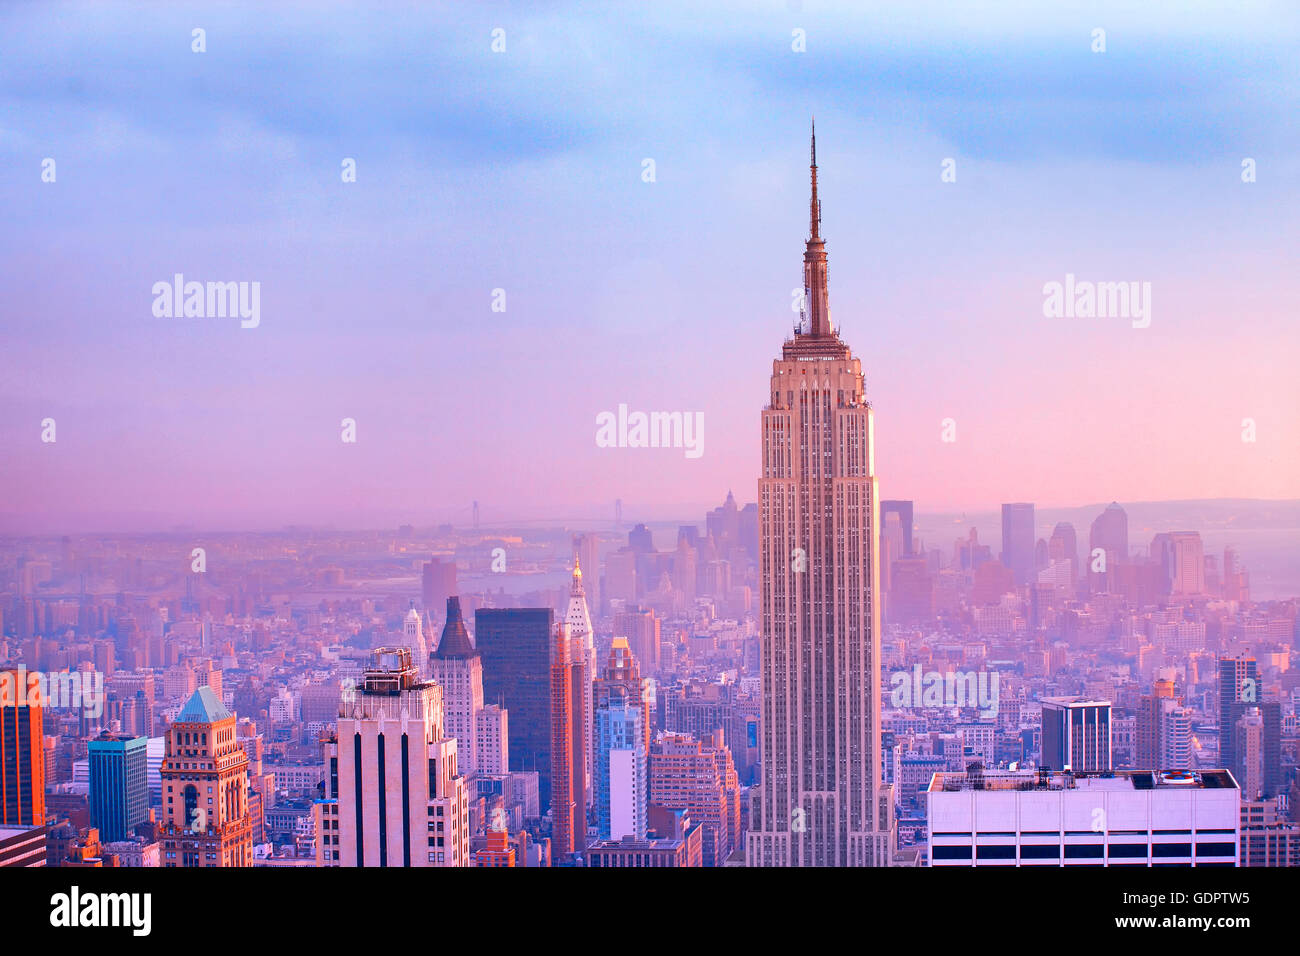 Manhattan skyline  in New York city - Stock Image